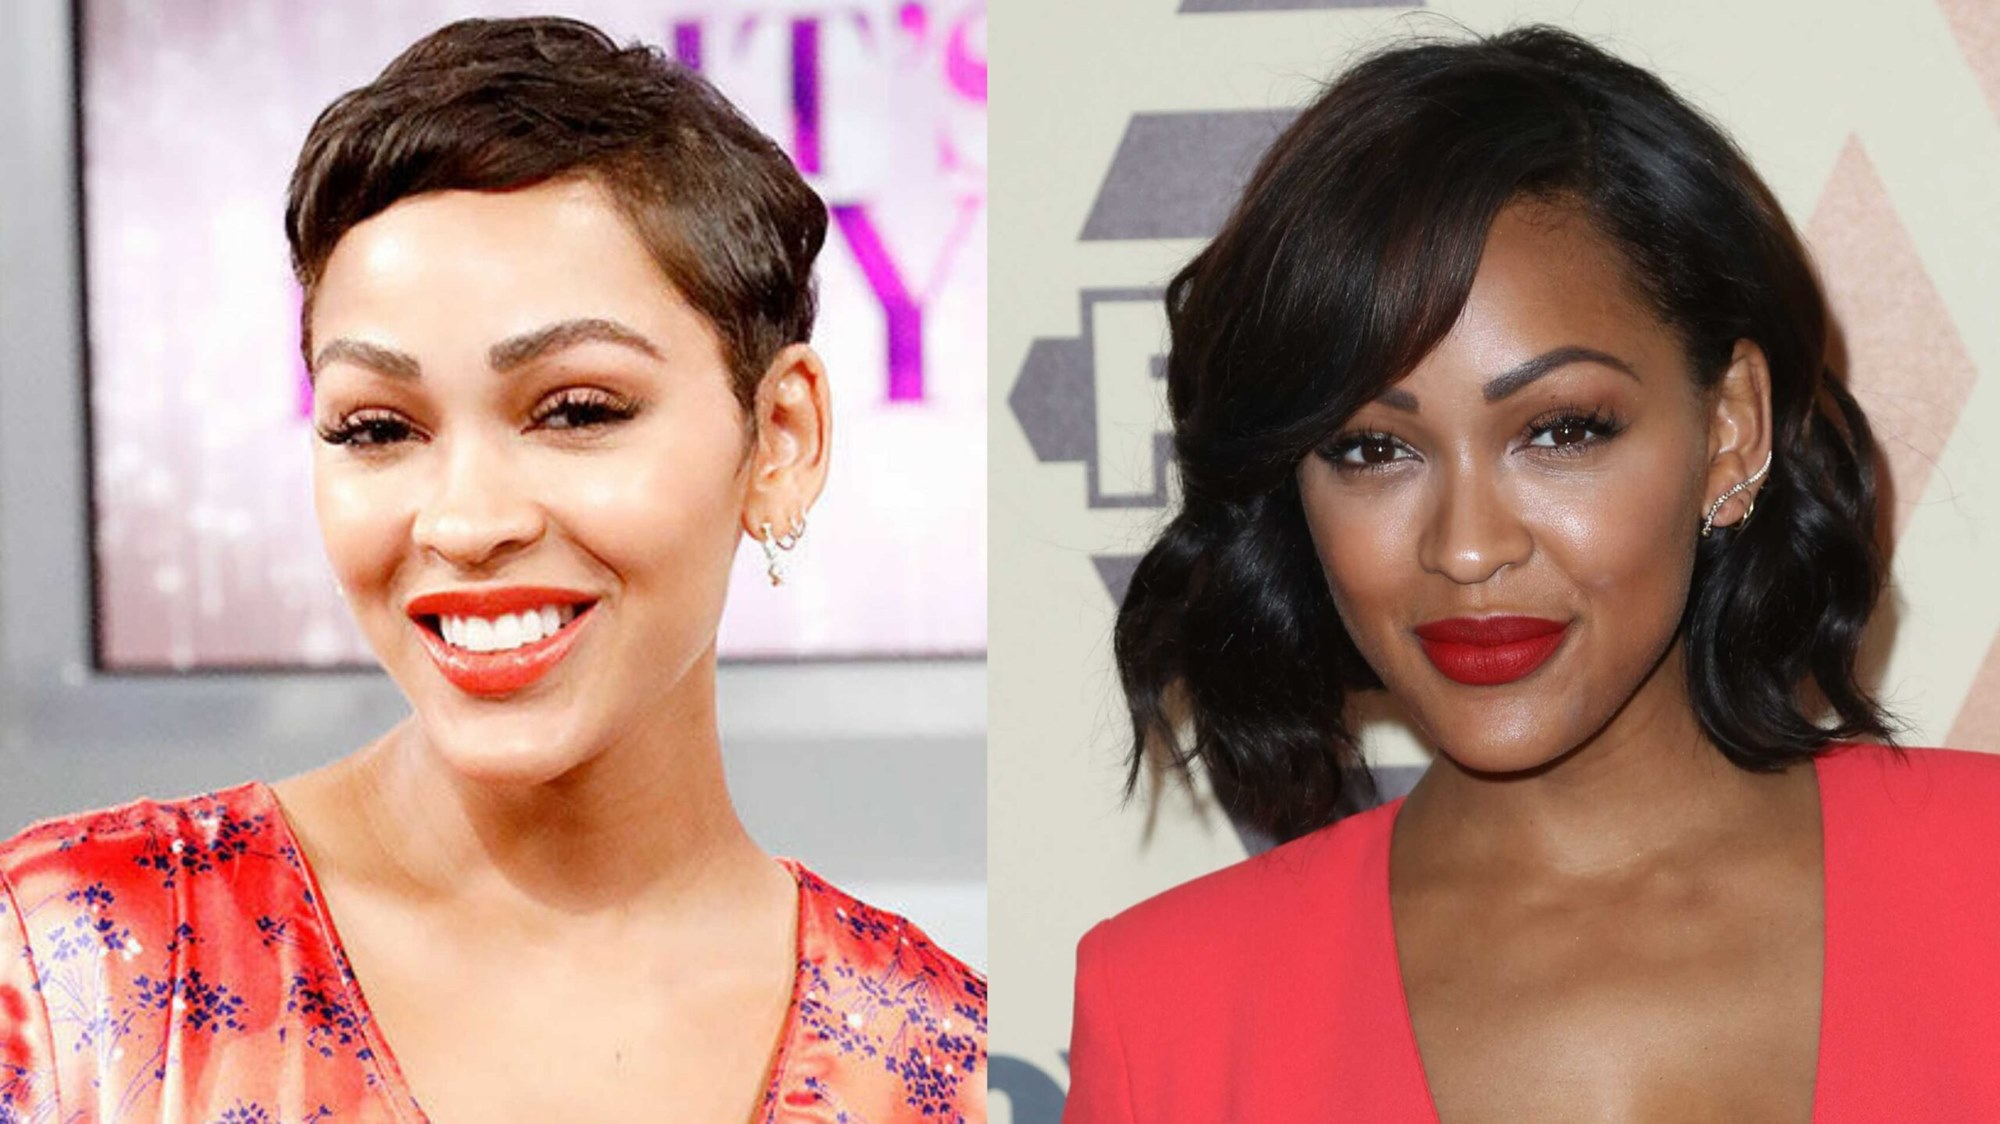 Meagan Good Skin Bleaching Controversy